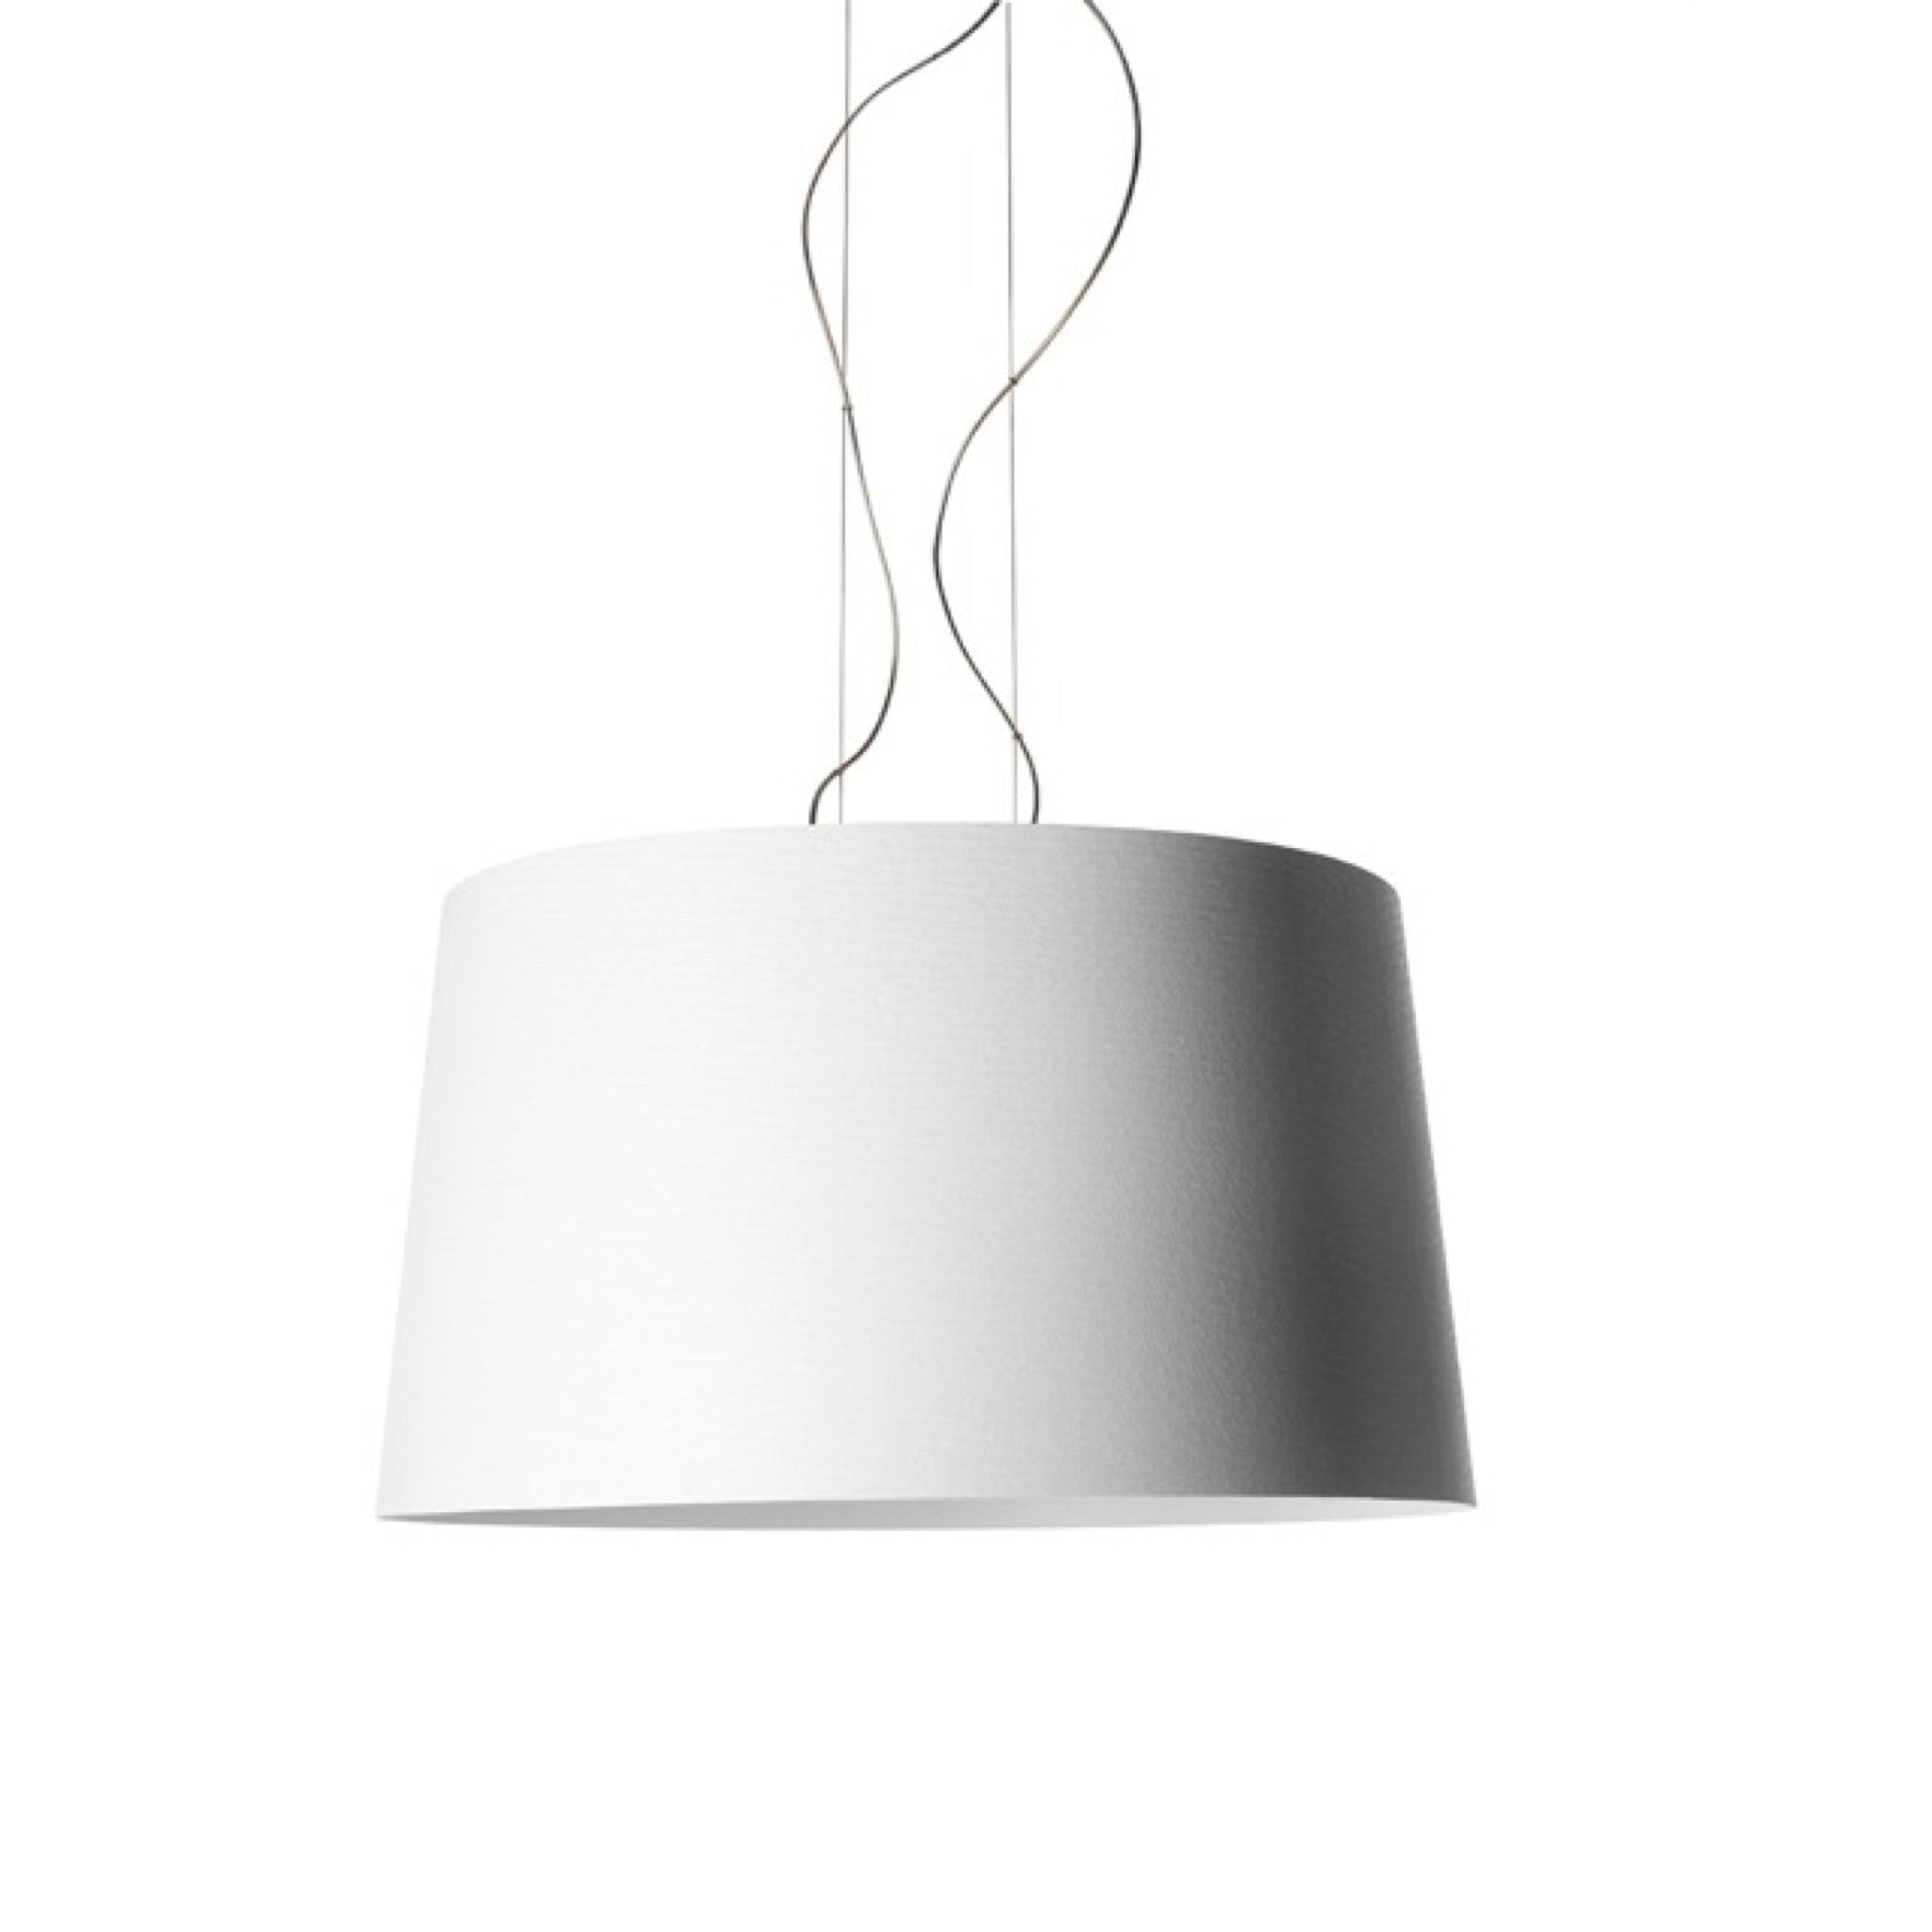 Twice As Twiggy Pendant Light by Marc Sadler